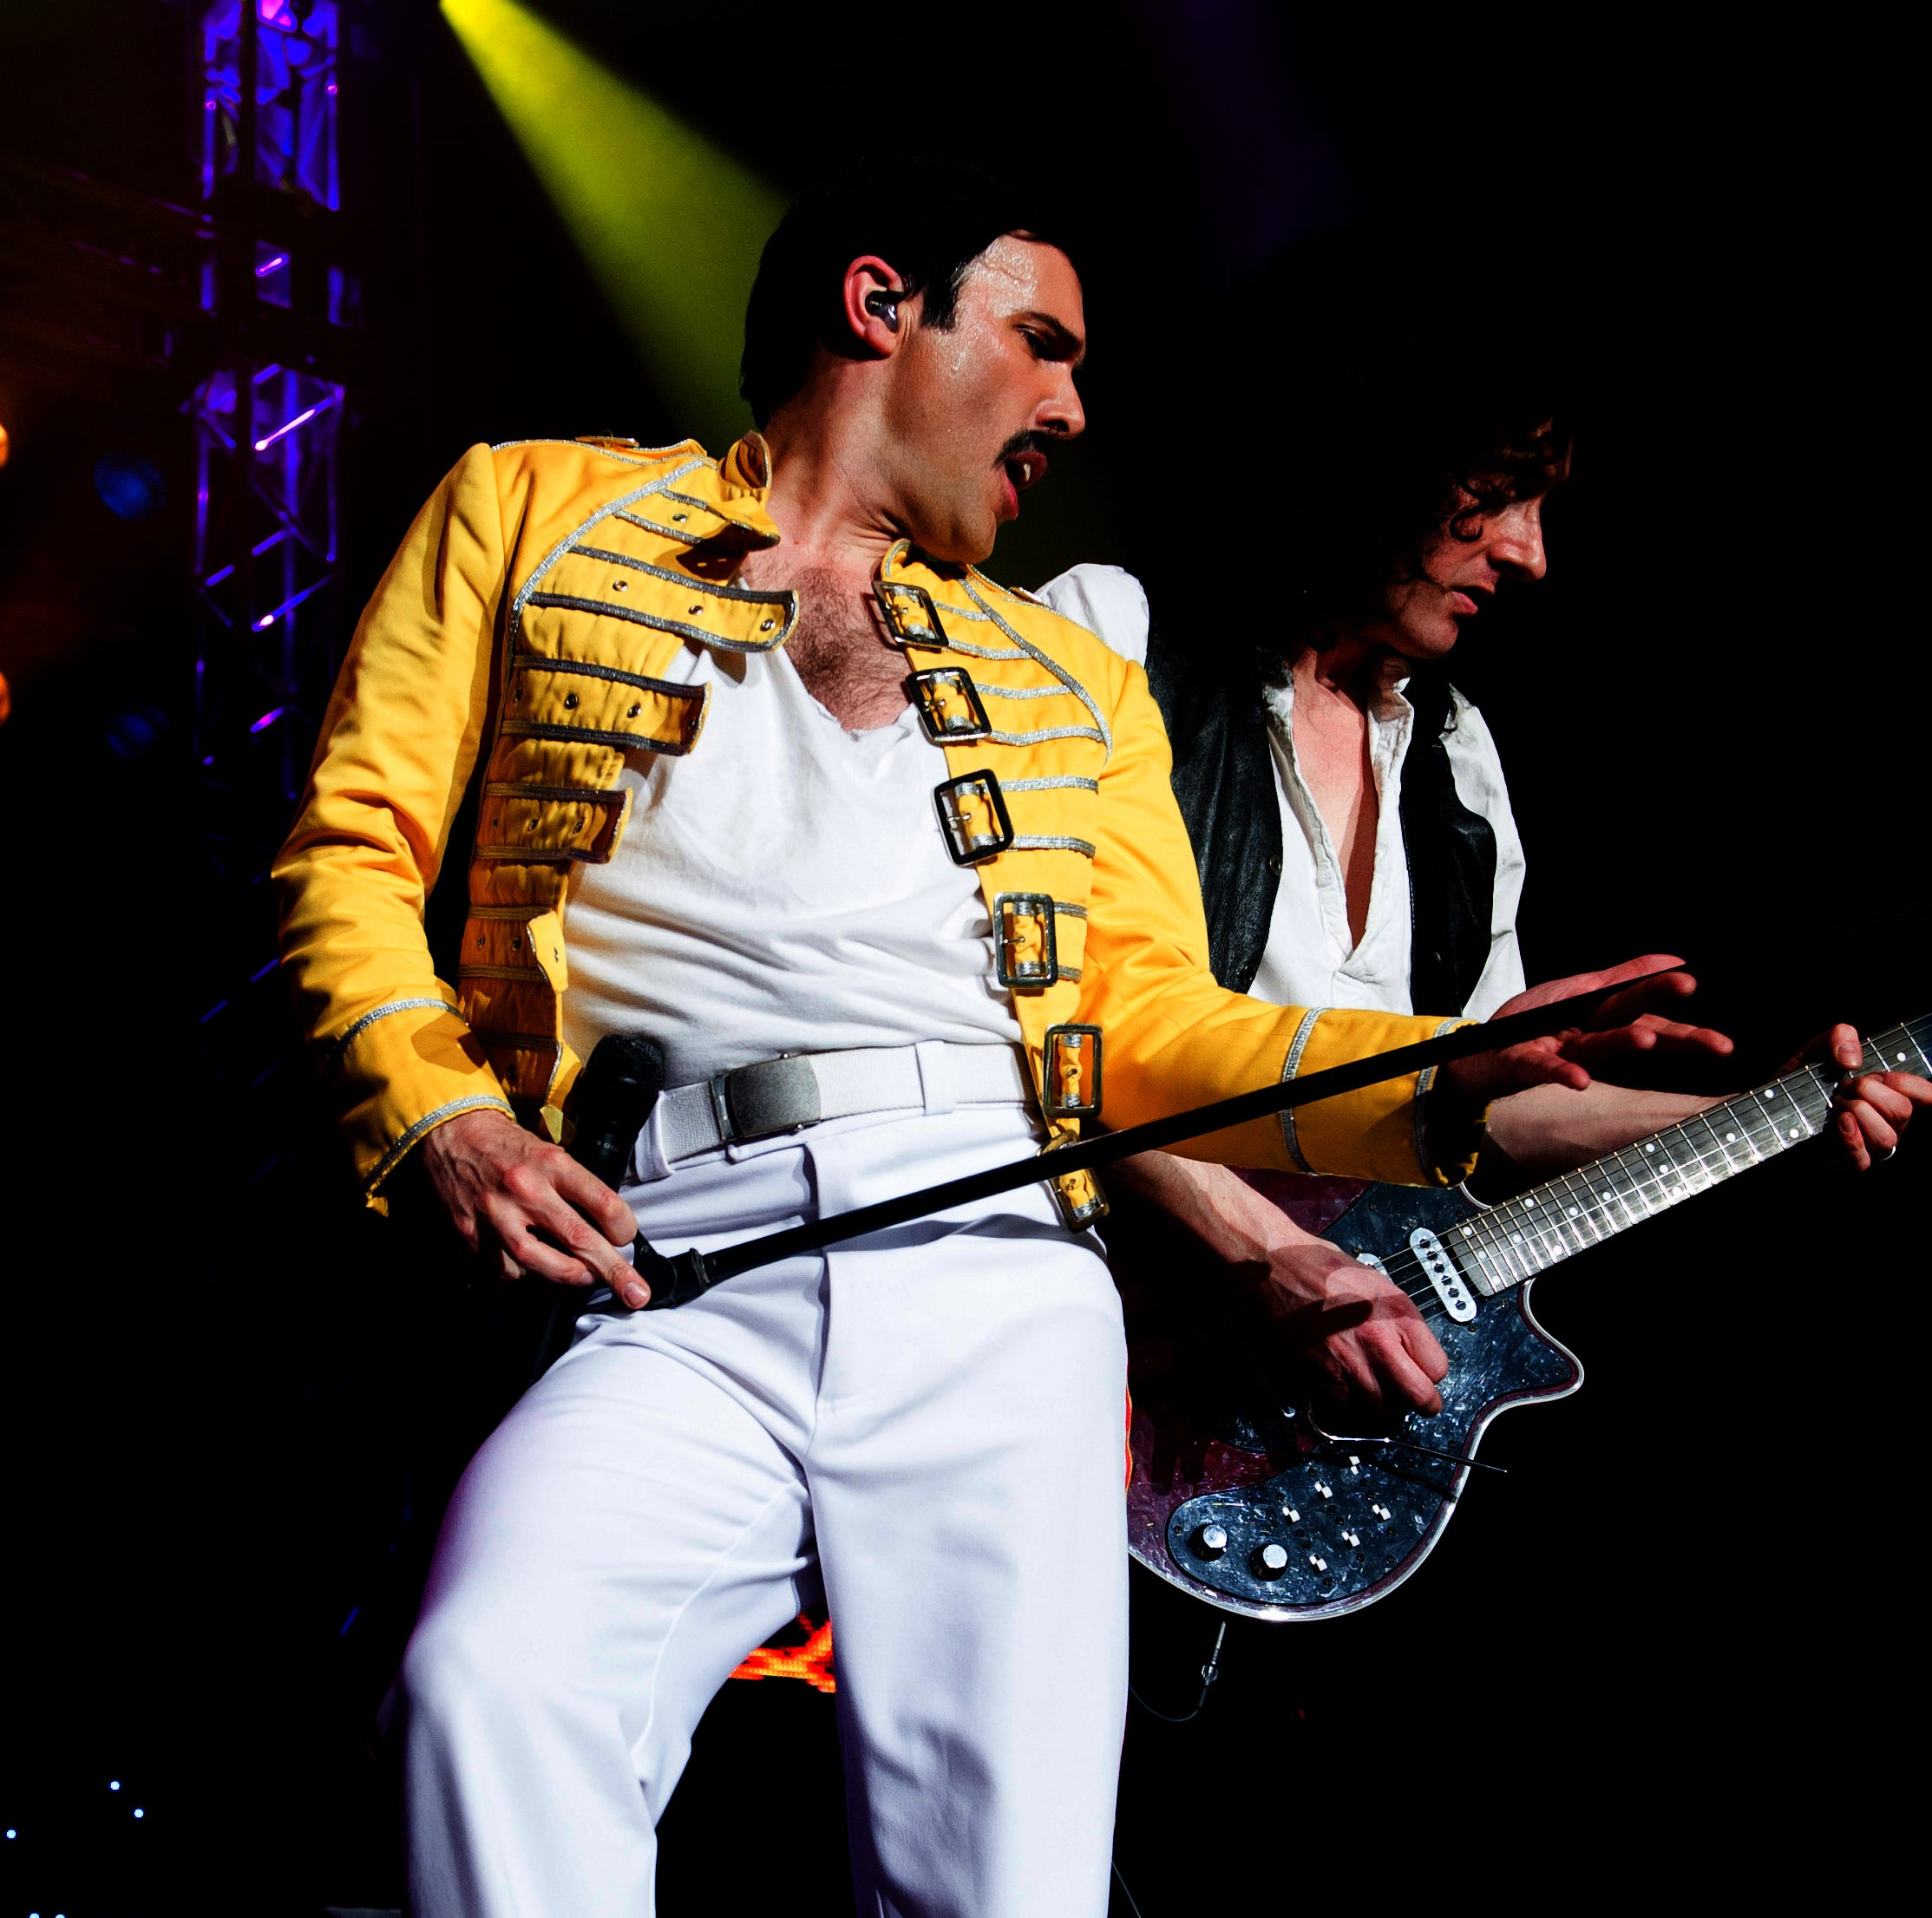 Killer Queen will rock you in Fort Myers, plus tributes to Dio, Bowie and Prince at Mann Hall